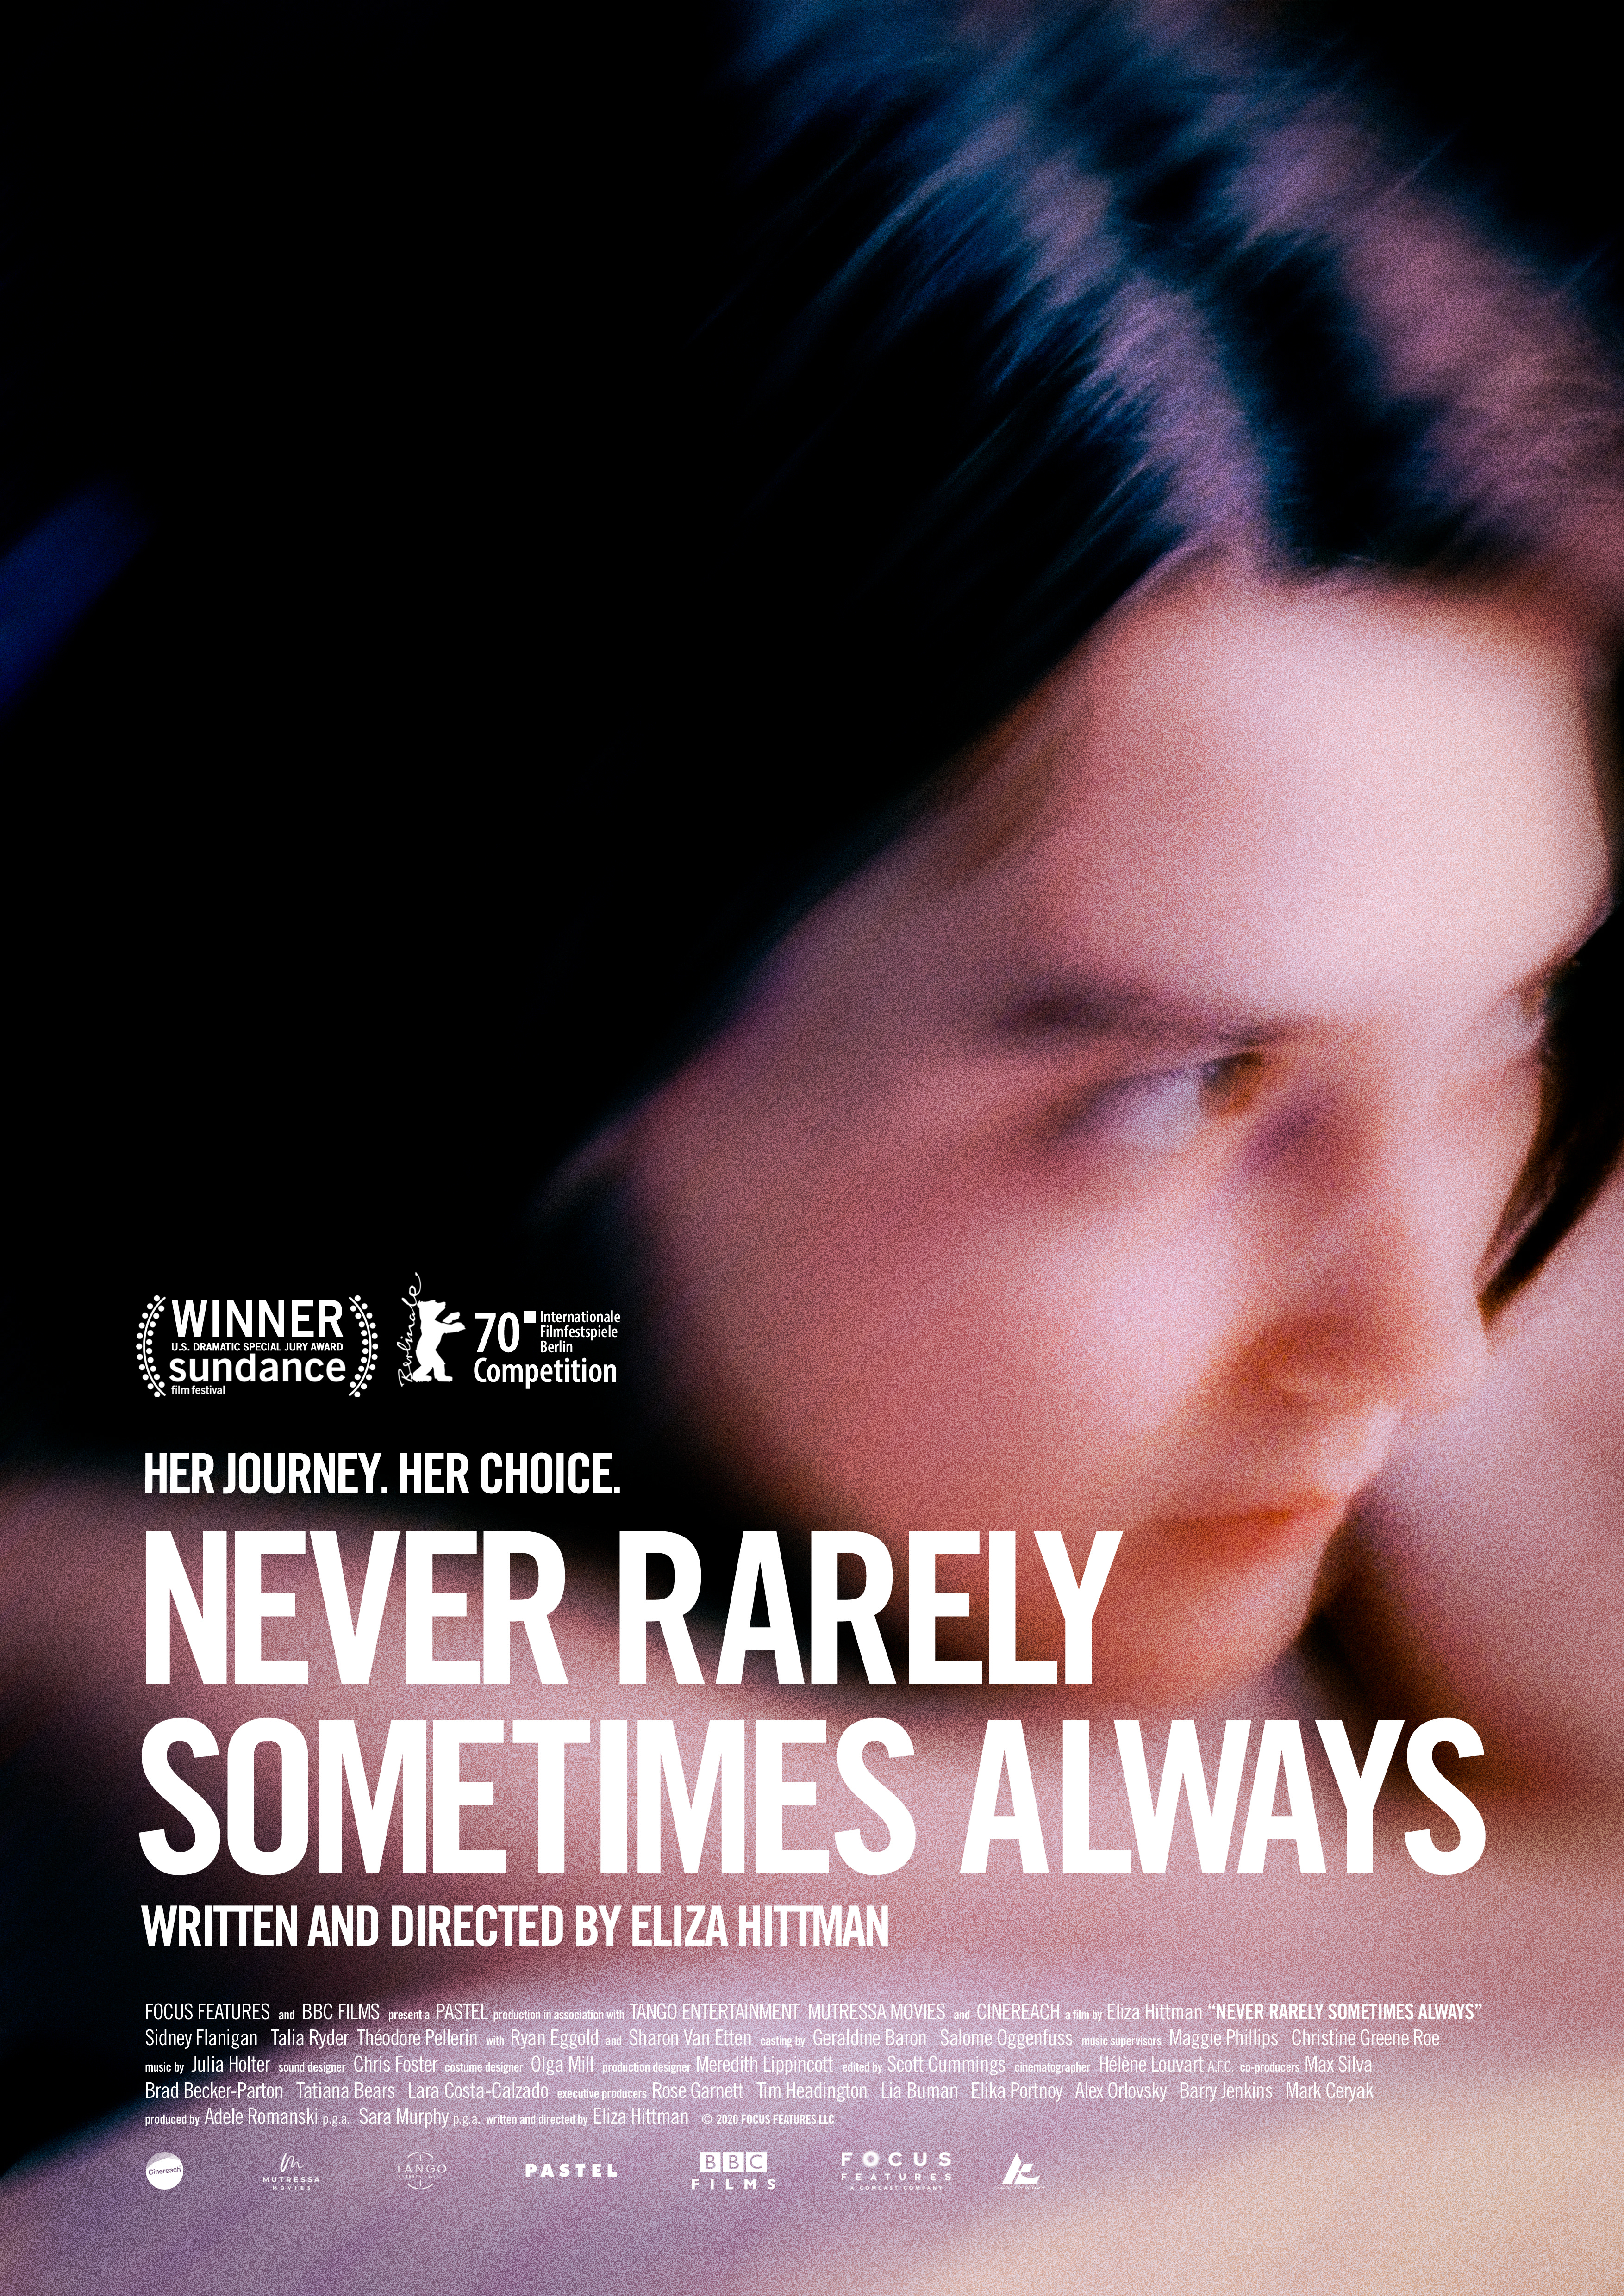 Promotional poster for NEVER RARELY SOMETIMES ALWAYS